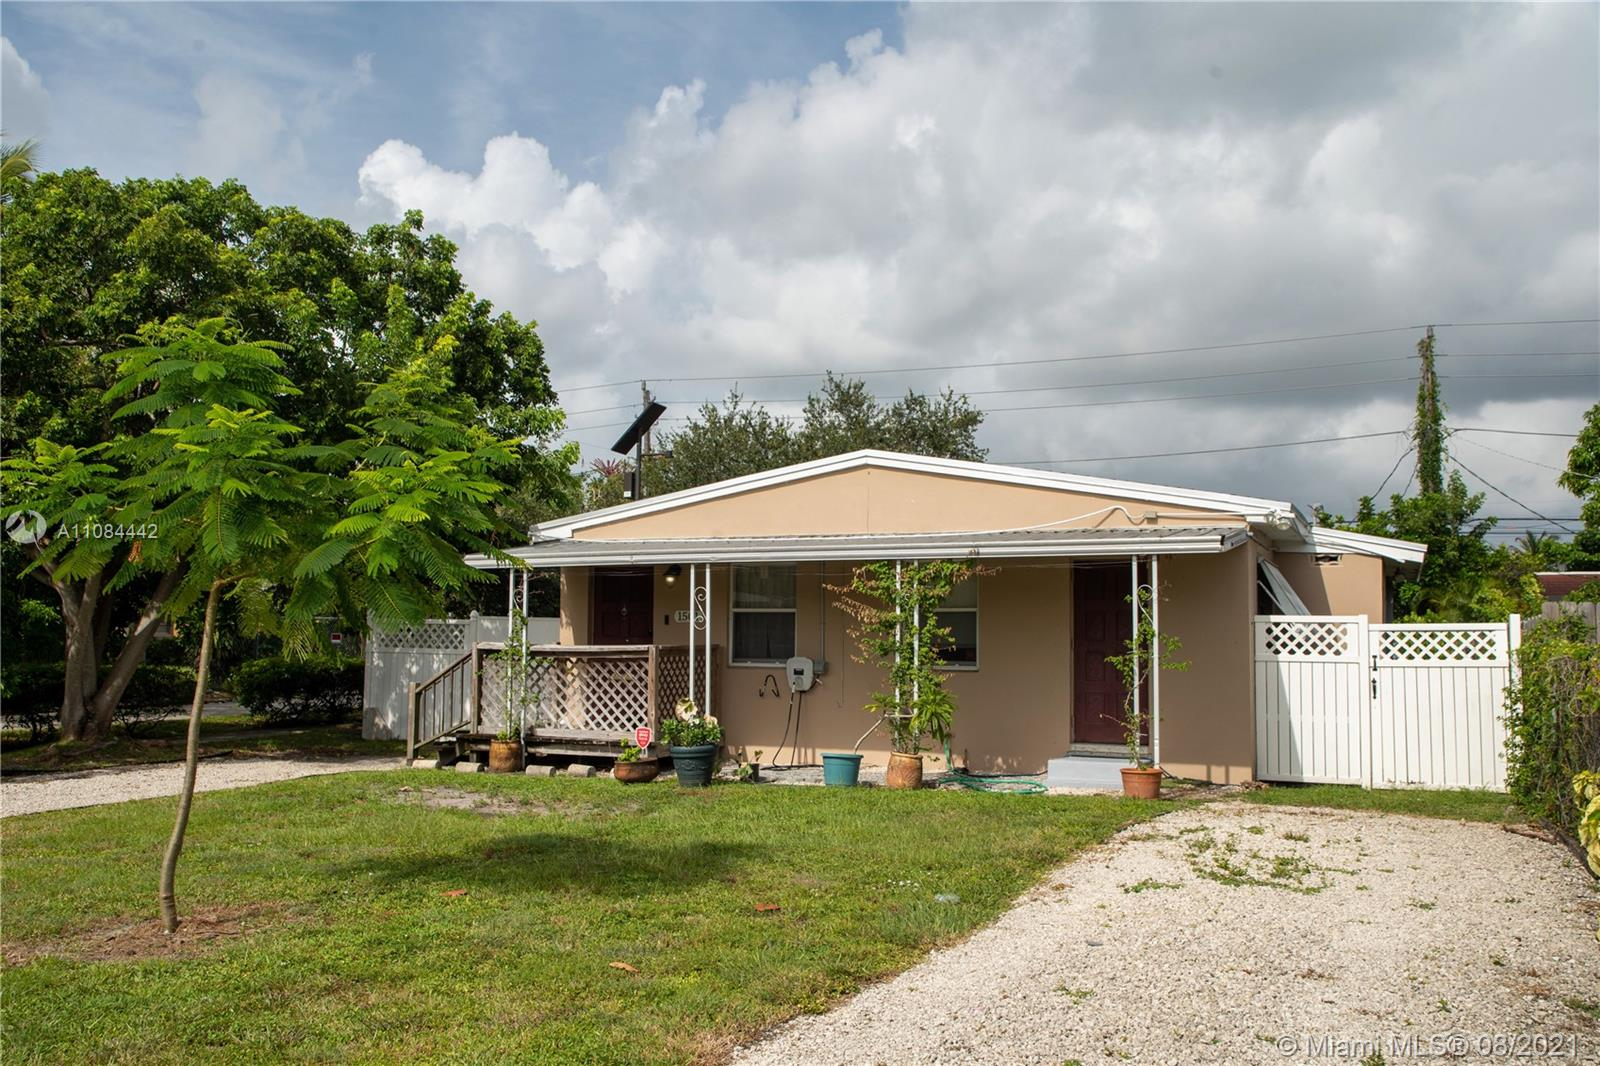 Progresso, 1501 NW 7th Ter, Fort Lauderdale, Florida 33311